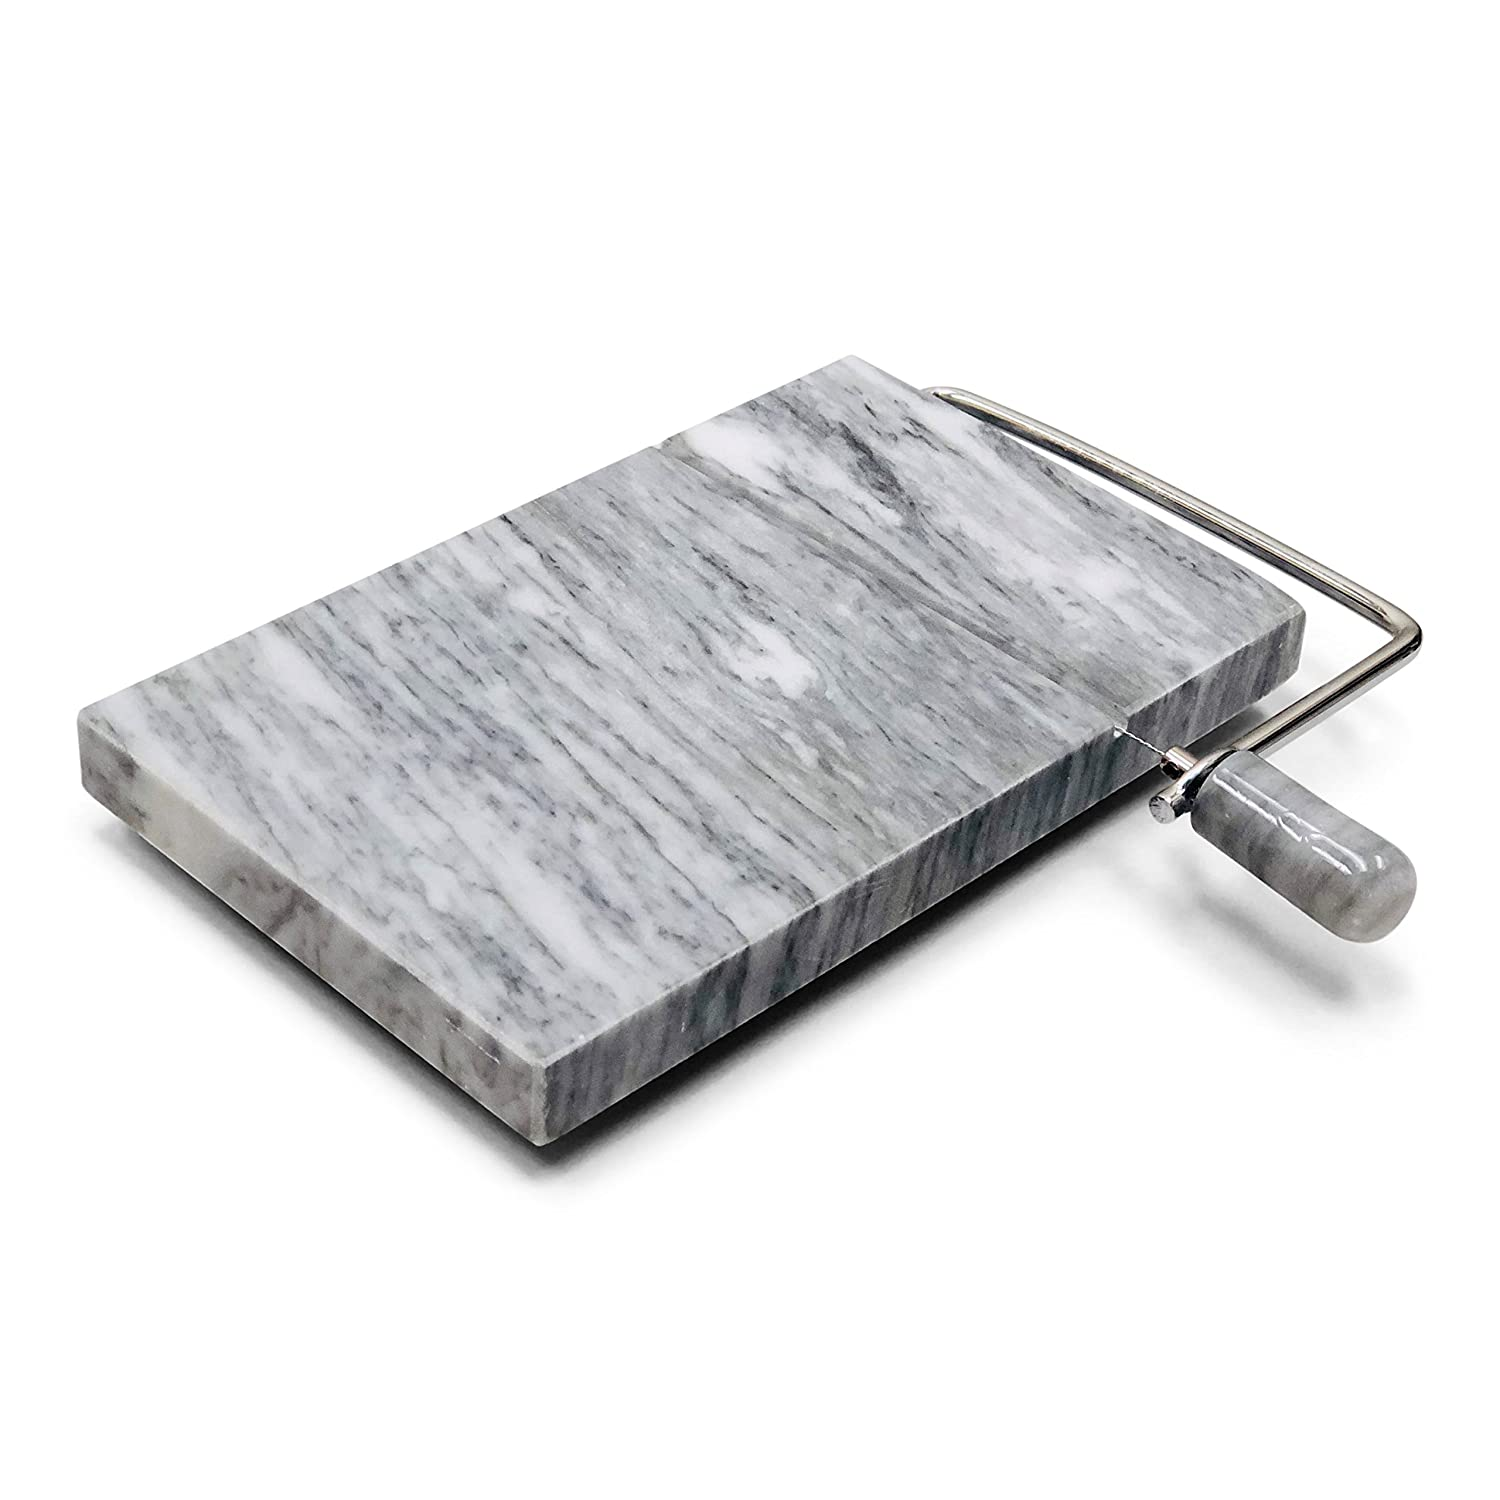 Amazon.com: TrueCraftware White Marble Cheese Board Slicer with 2 ...